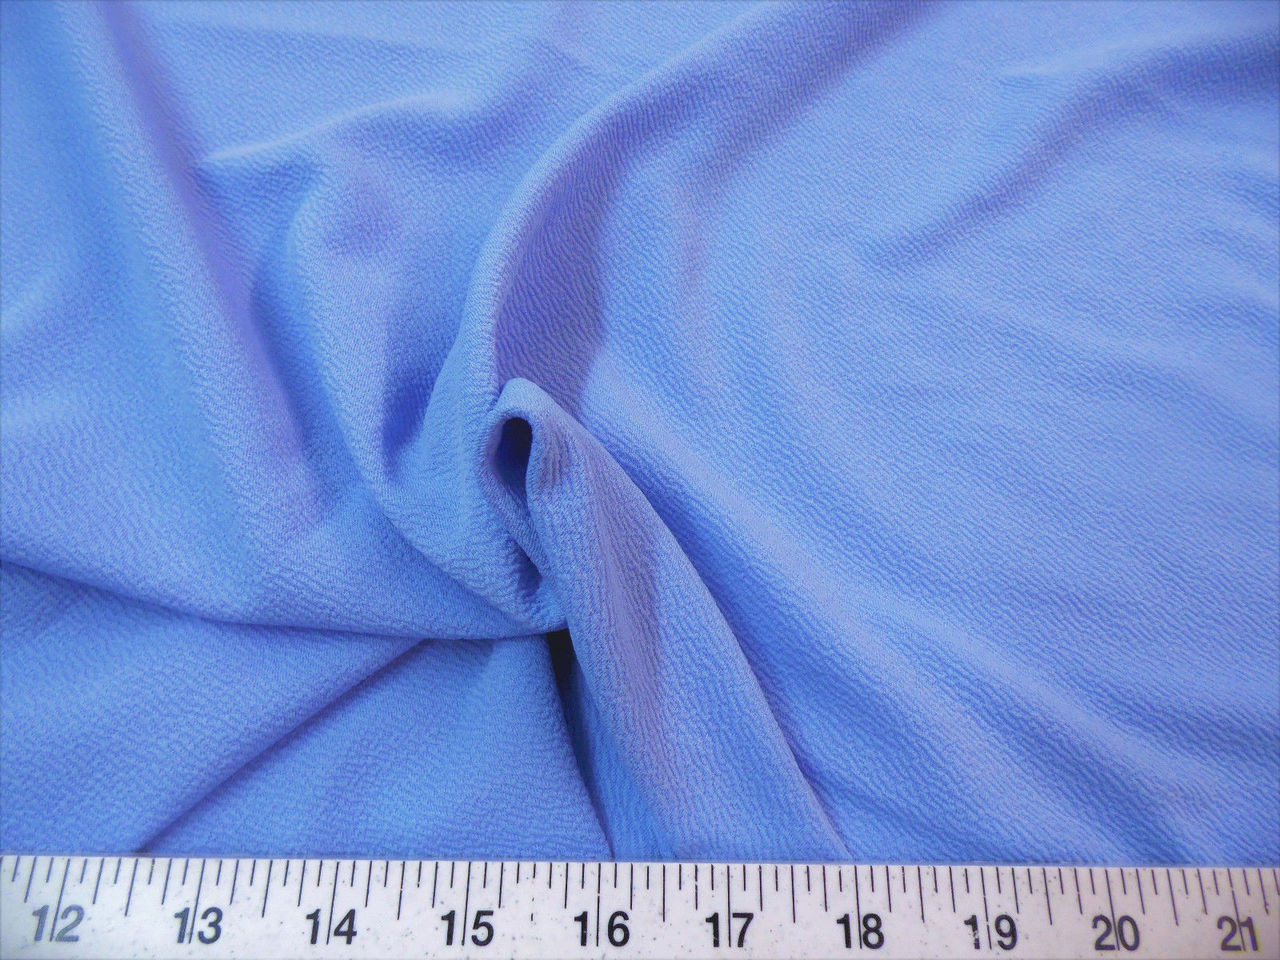 Paylessfabric Fabric Liverpool Textured 4 Way Stretch Scuba Mint Green LP06